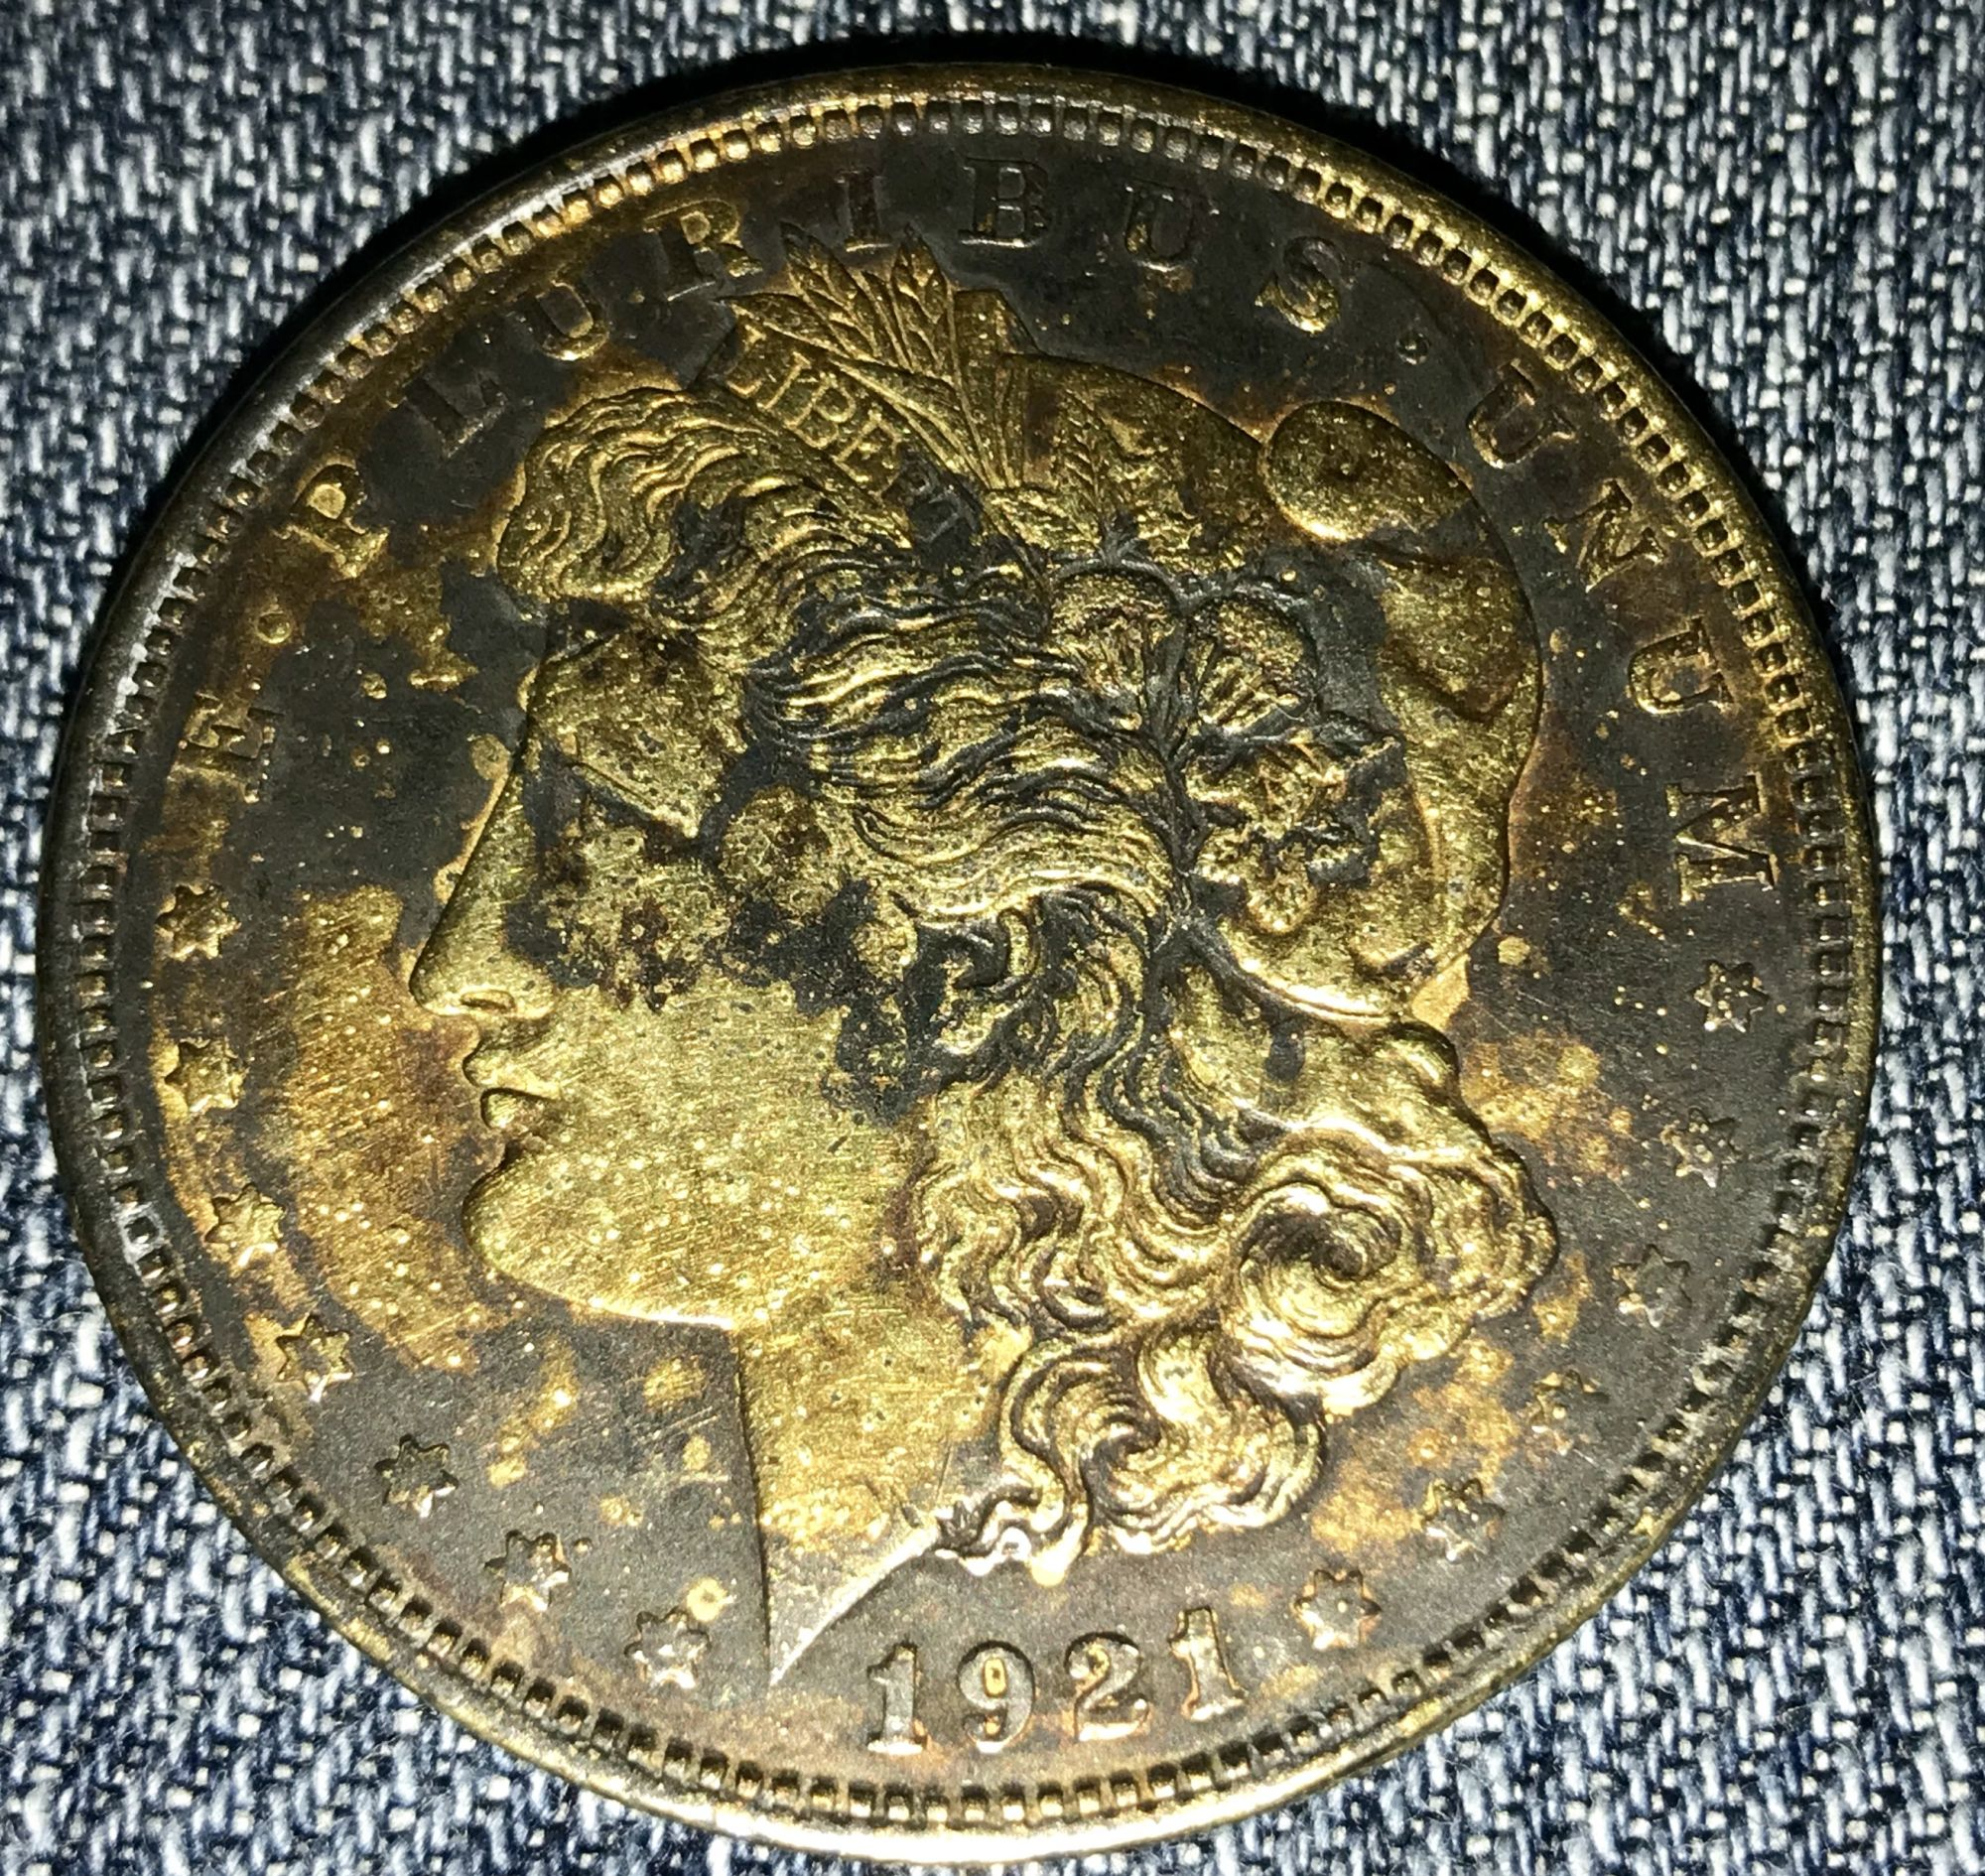 Interesting Finds - US, World, and Ancient Coins - NGC Coin